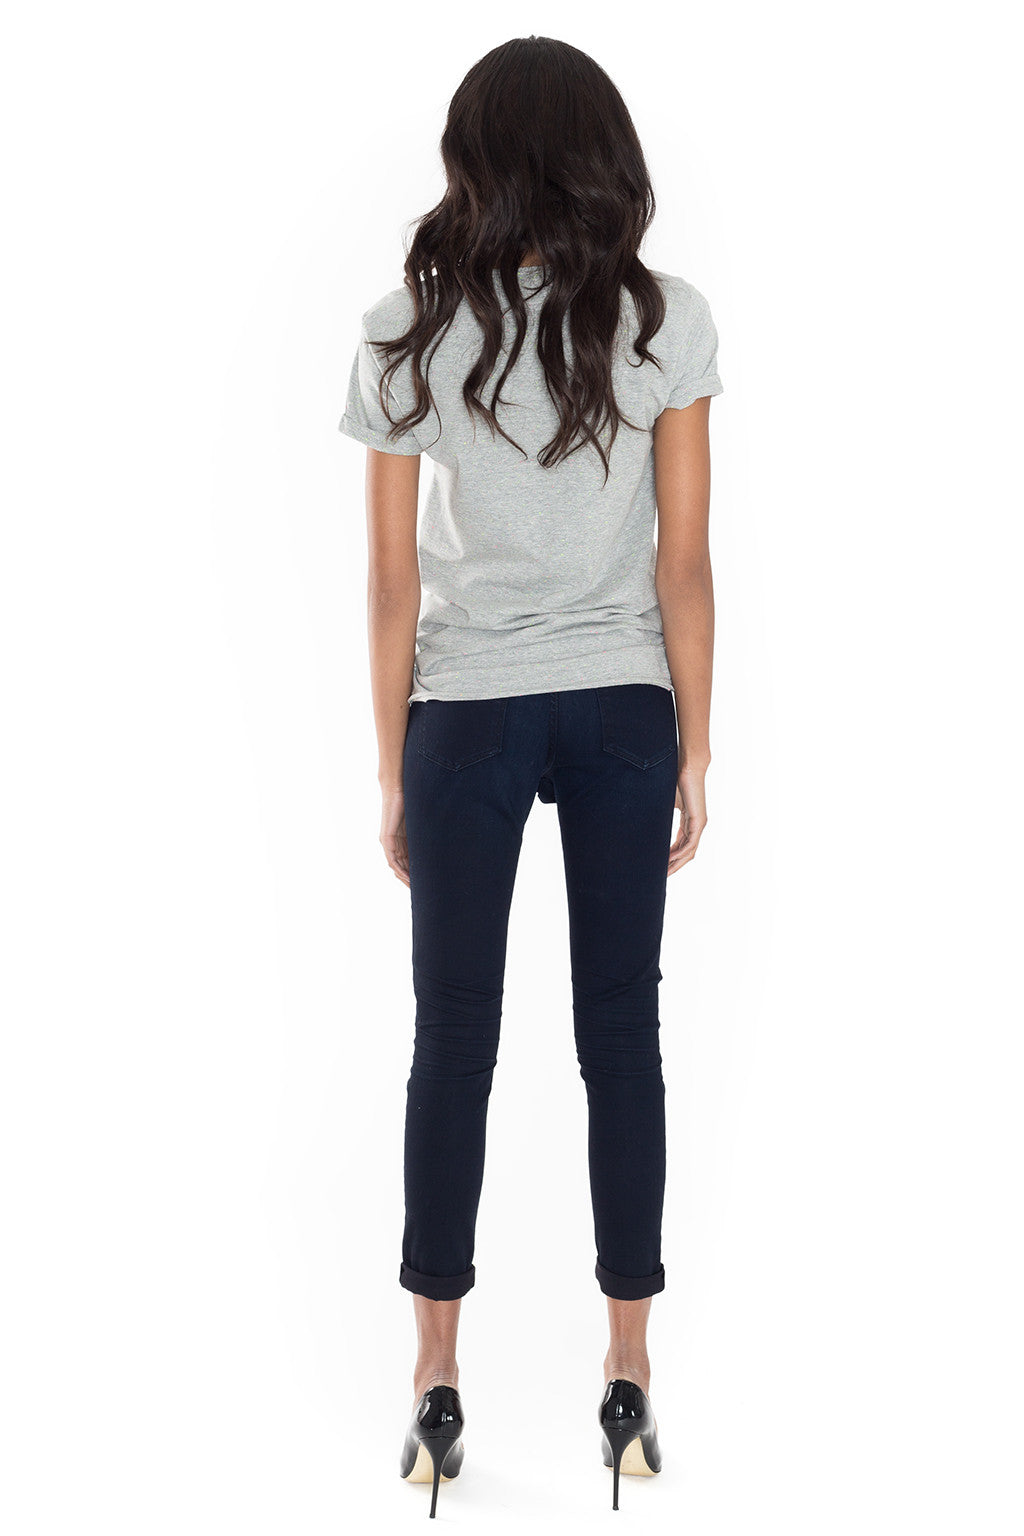 The Ingenue Skinny Jeans - Schoen by Yu - Jeans - TOPGEARNY